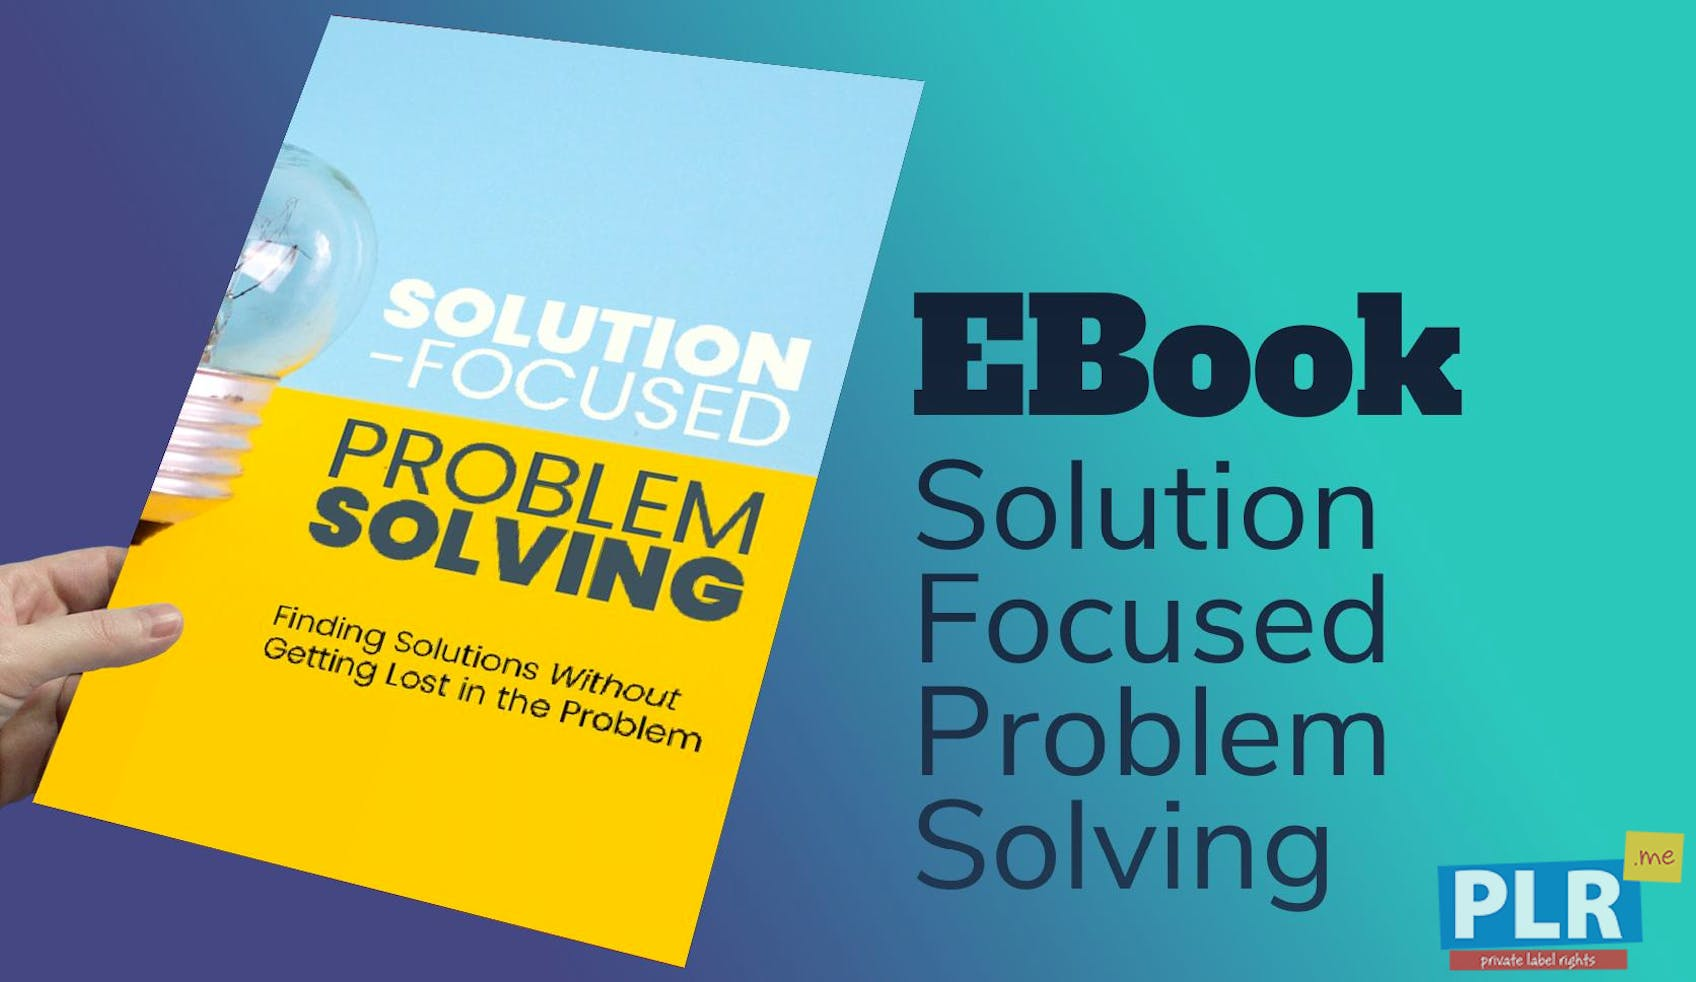 Solution Focused Problem Solving